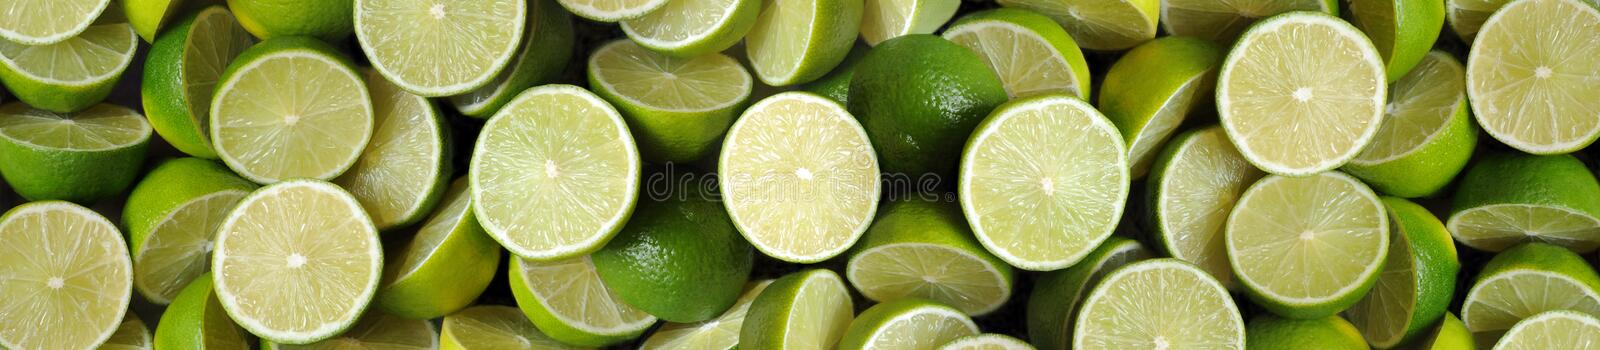 Limes-panorama. Panorama comprised of multiple photos royalty free stock image